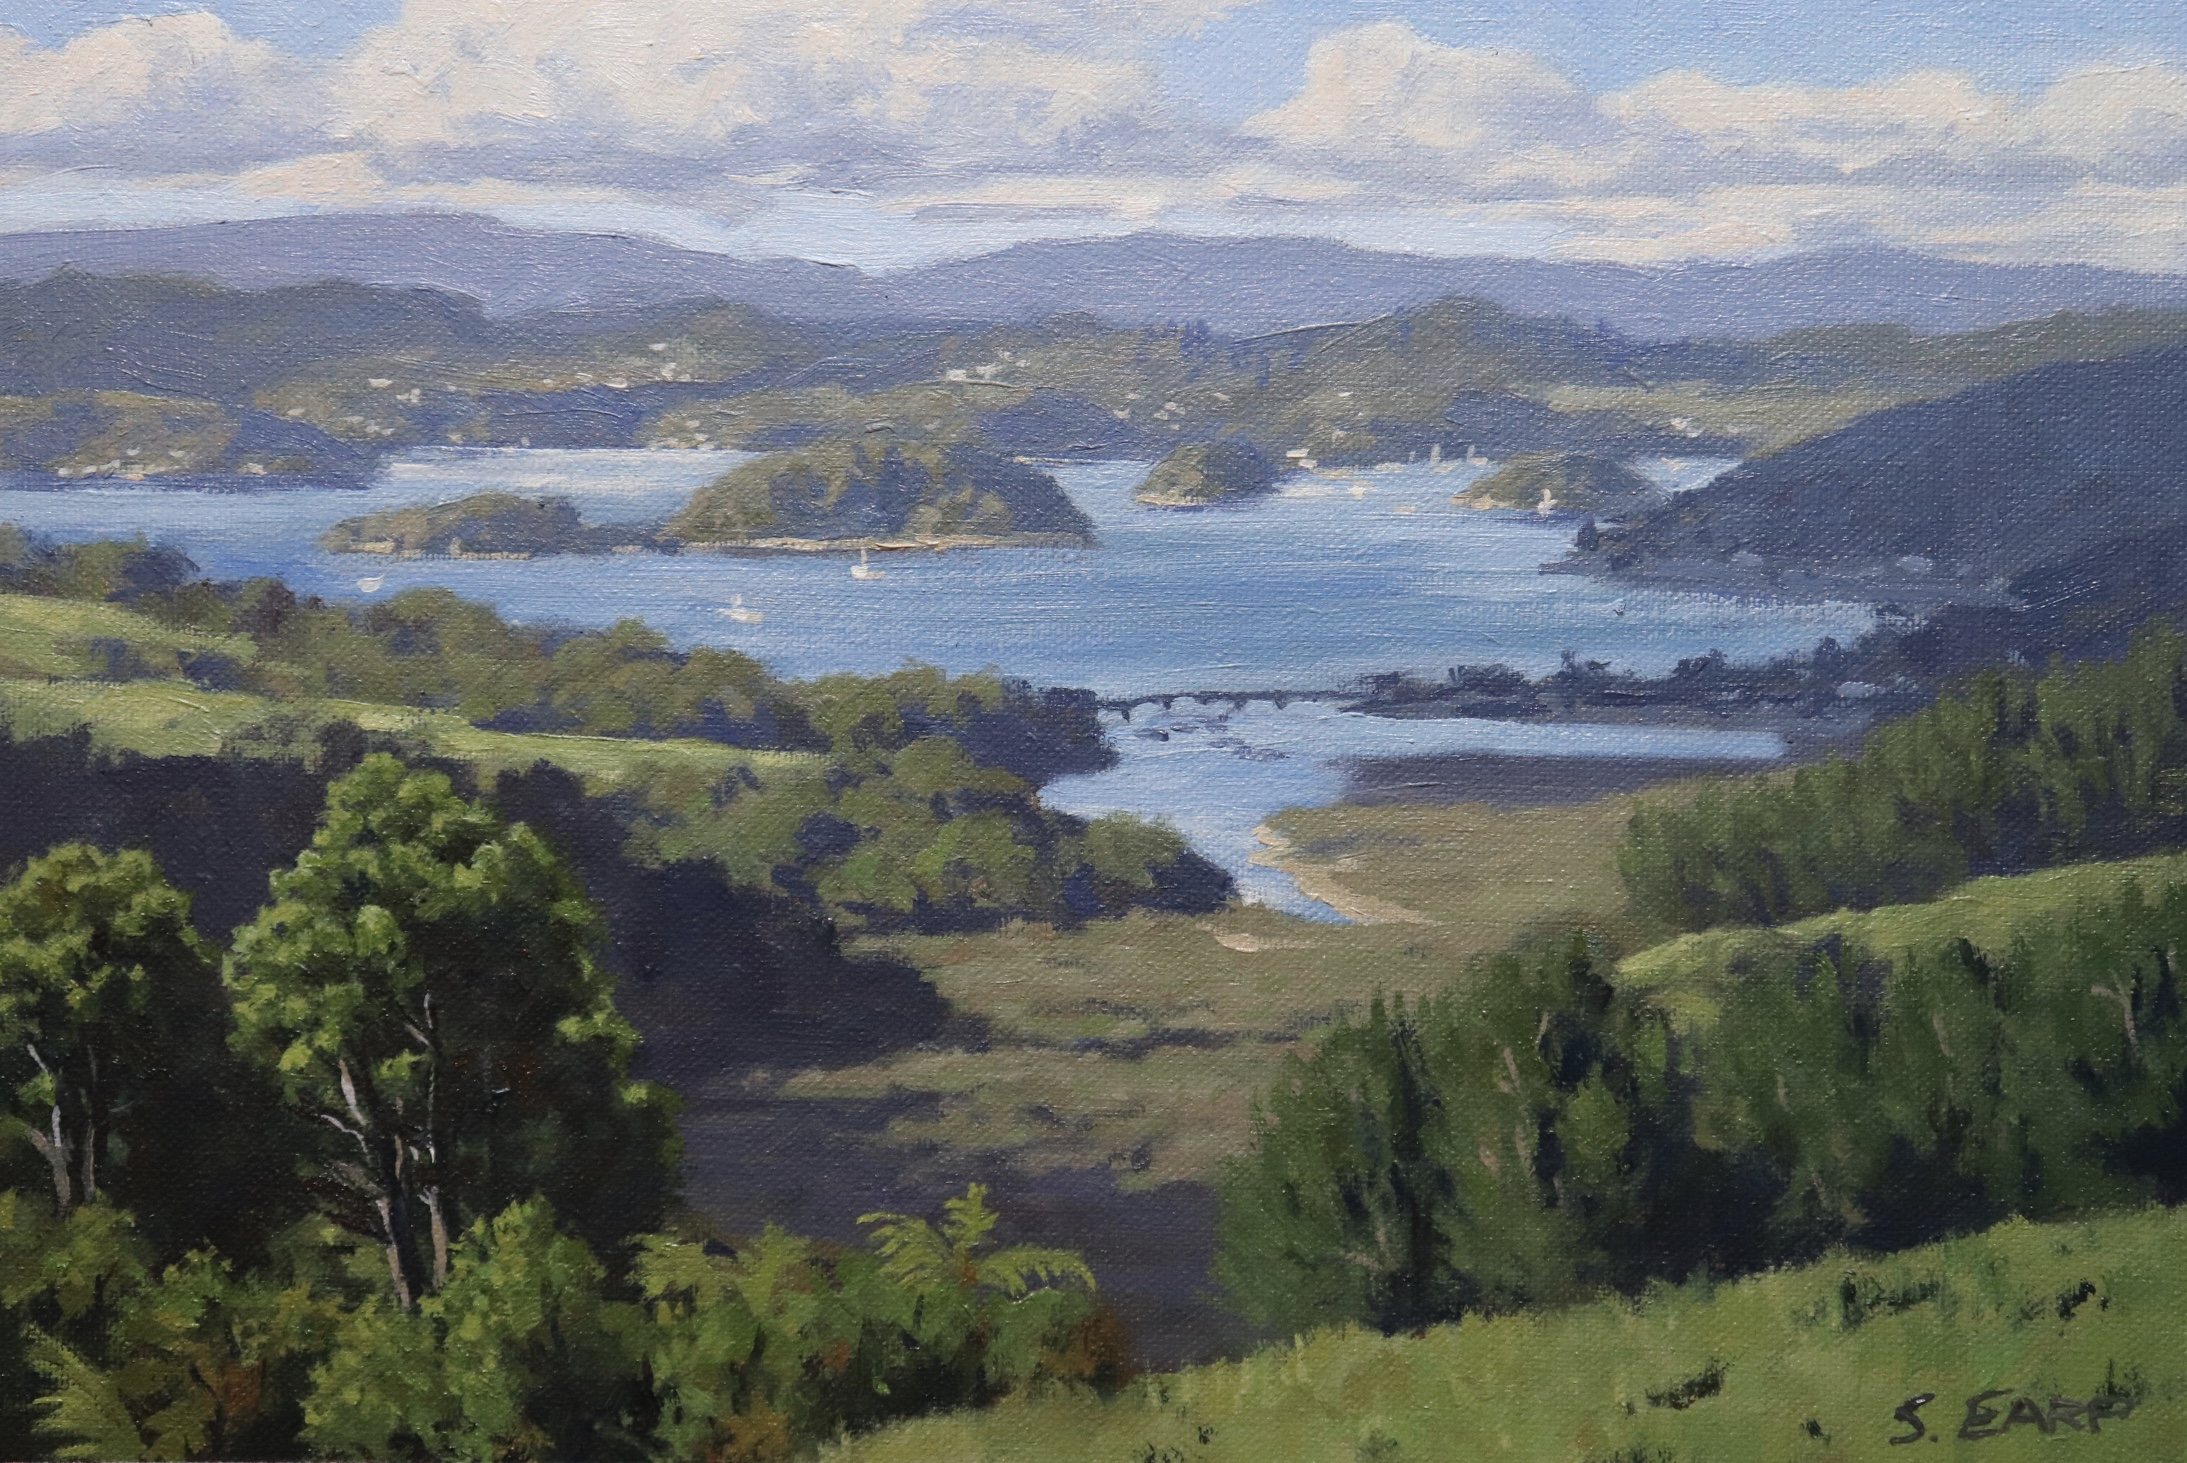 Bay of Islands, New Zealand, 20cm x 30cm, oil on canvas